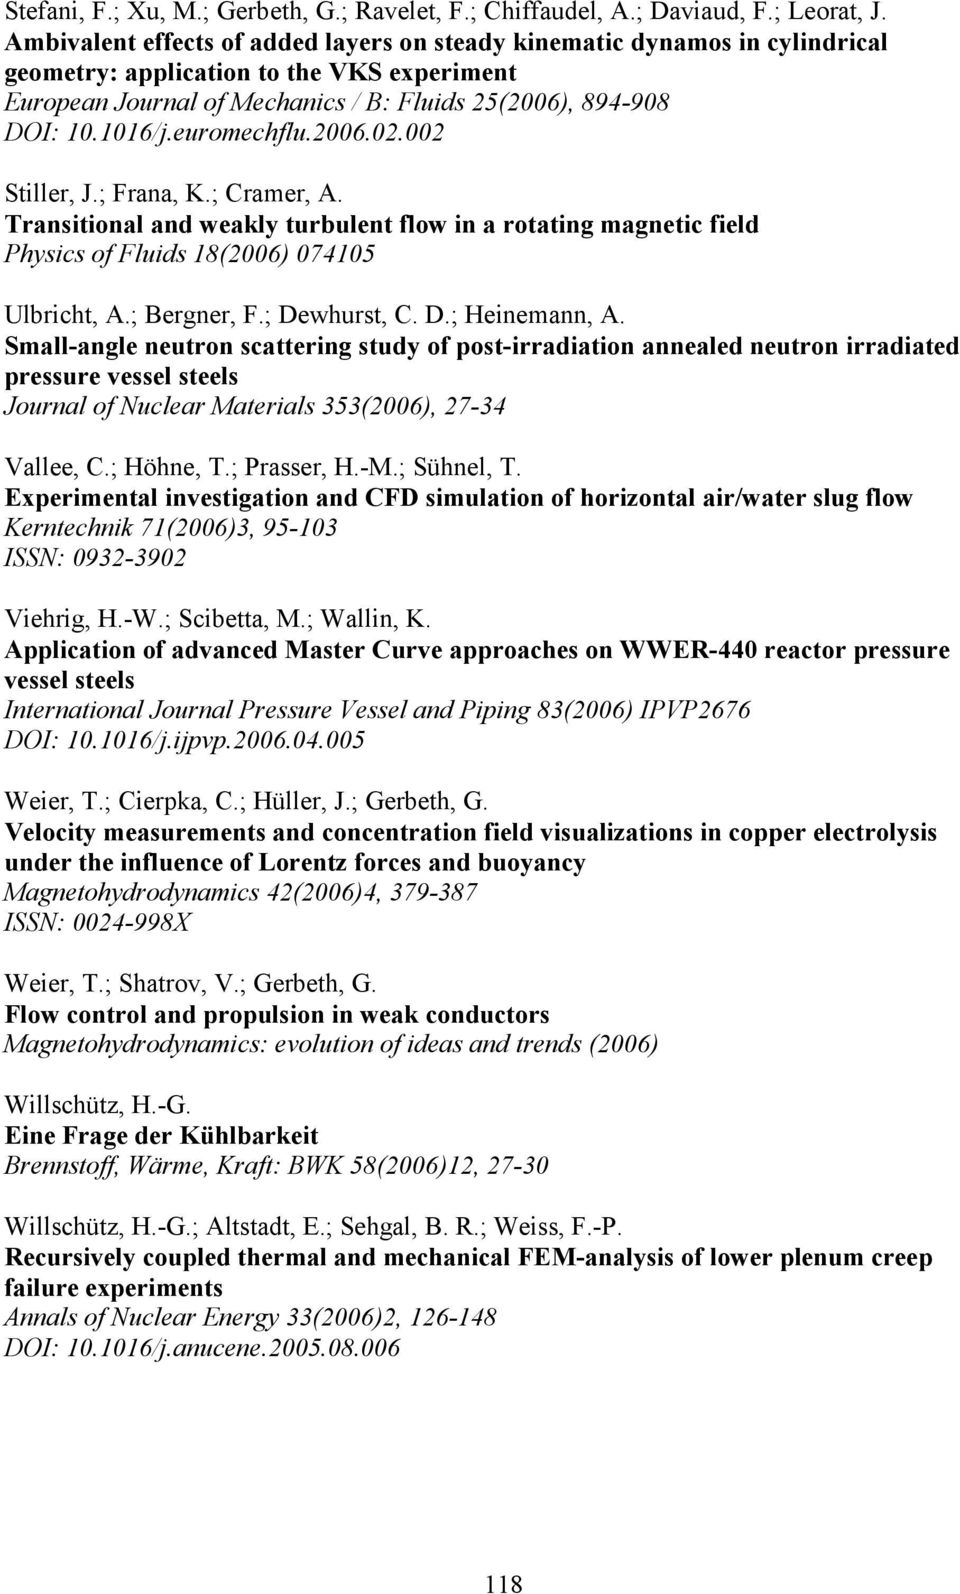 euromechflu.2006.02.002 Stiller, J.; Frana, K.; Cramer, A. Transitional and weakly turbulent flow in a rotating magnetic field Physics of Fluids 18(2006) 074105 Ulbricht, A.; Bergner, F.; Dewhurst, C.